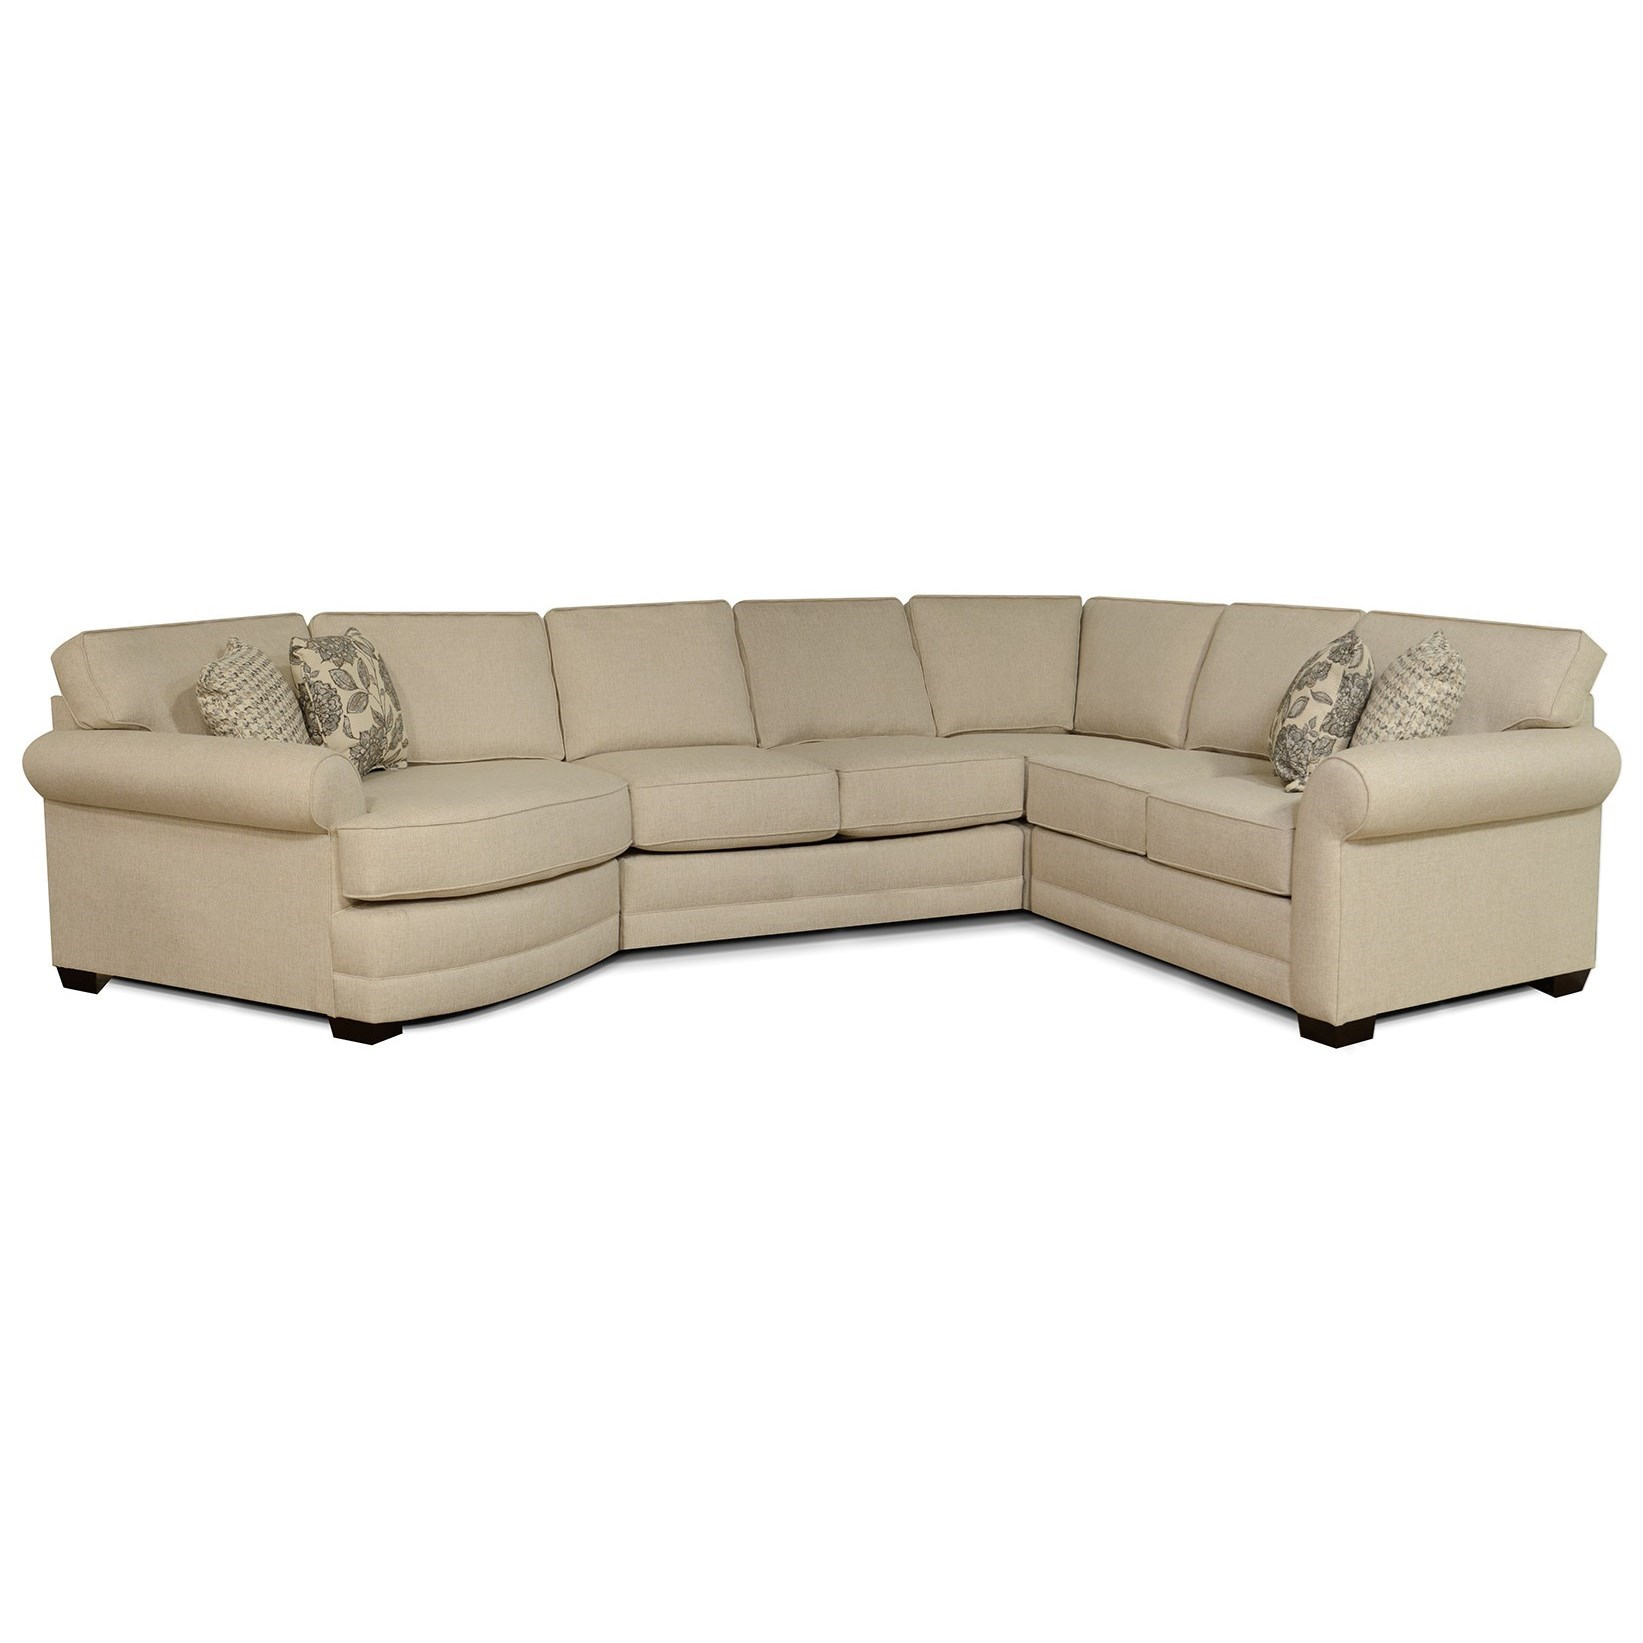 Brantley 4-Piece Sectional by England at Suburban Furniture